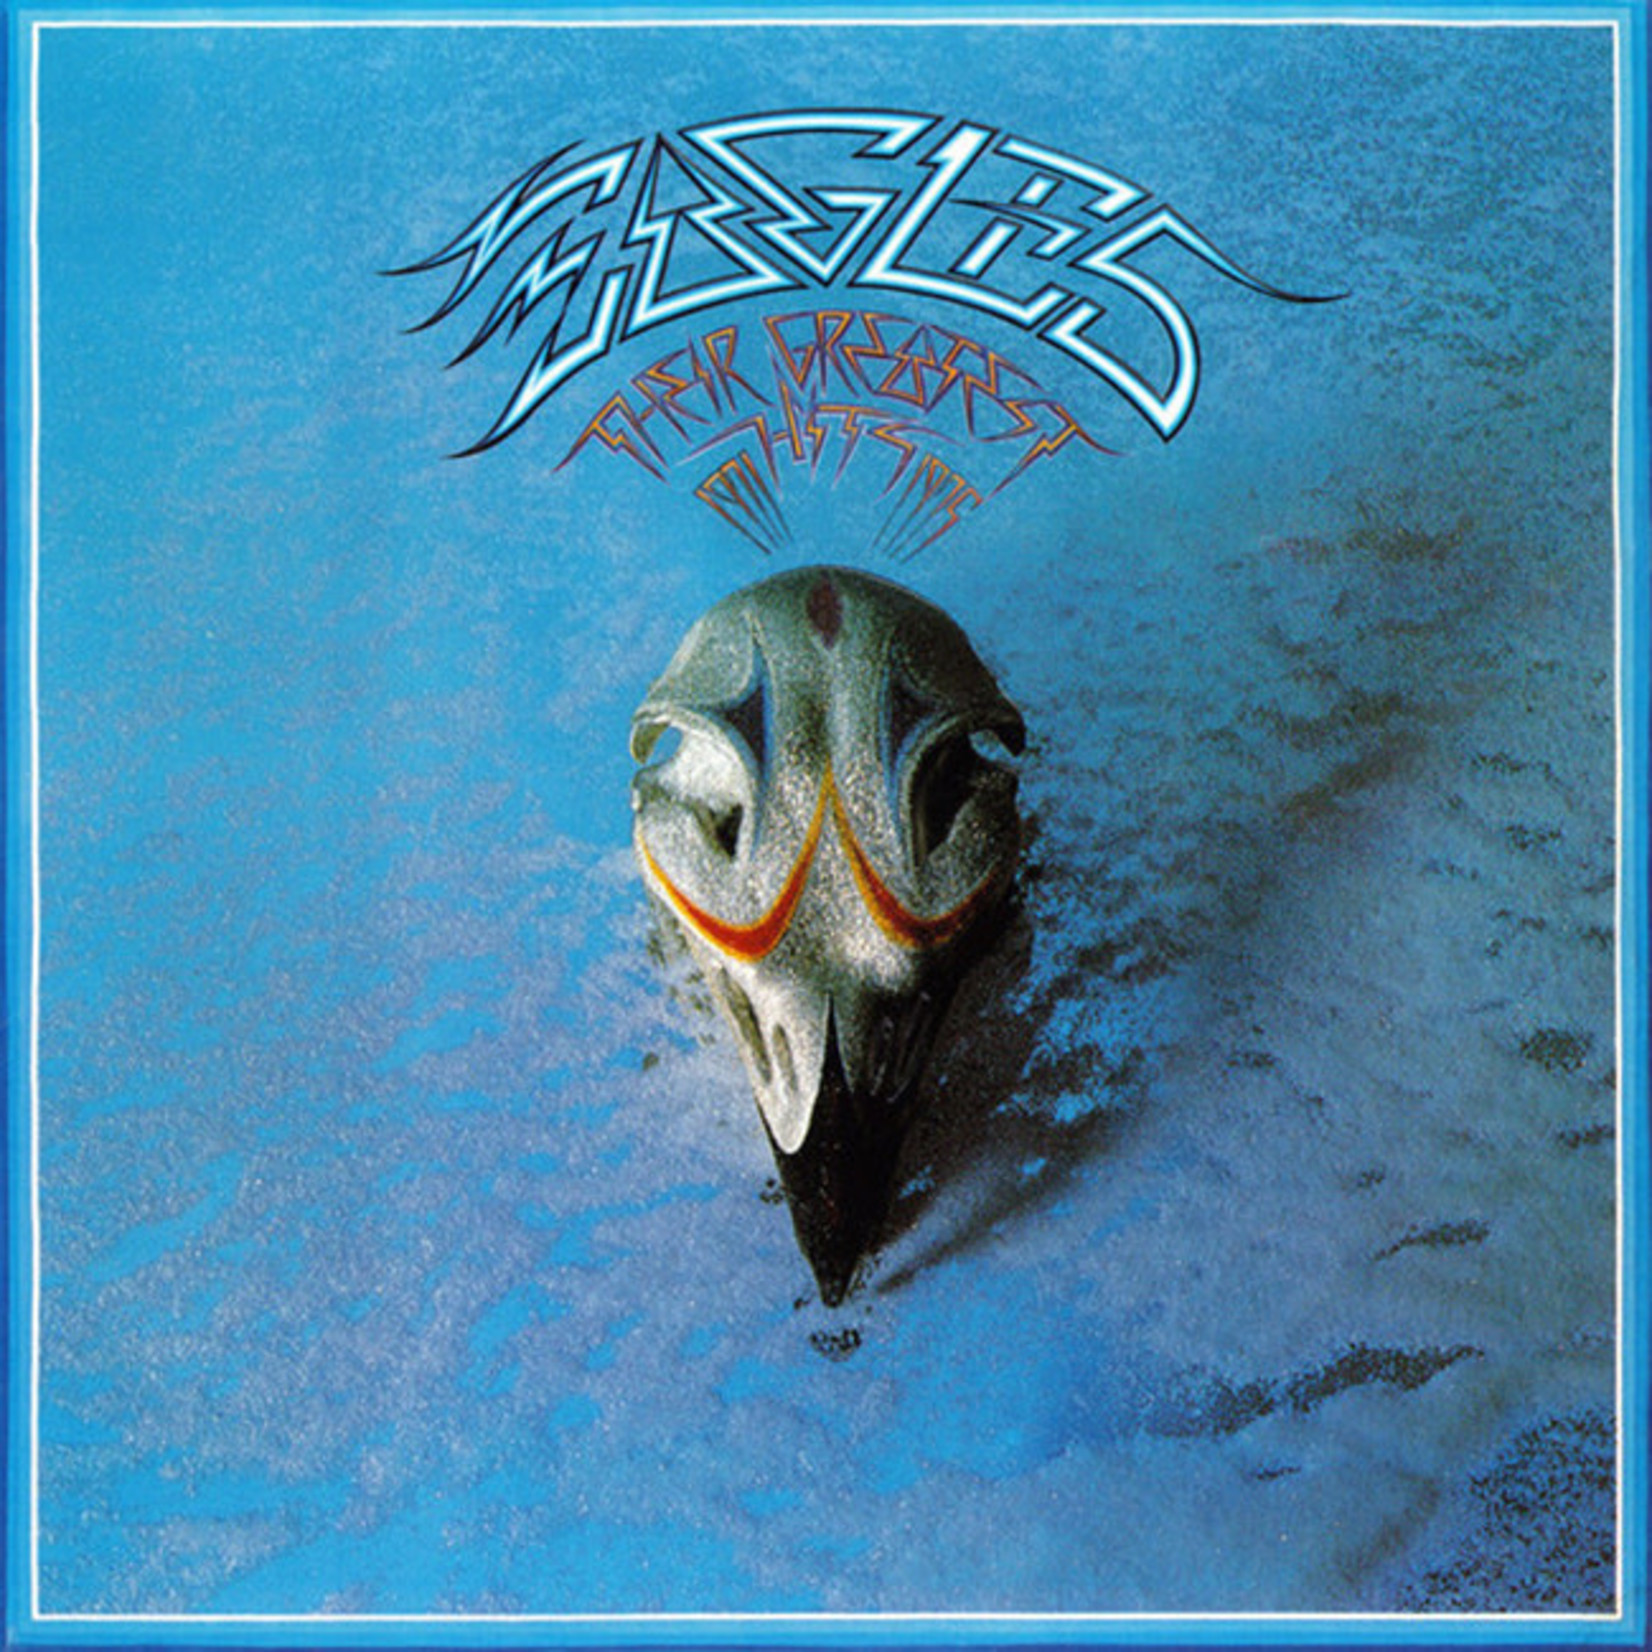 [New] Eagles: Greatest Hits 71-75